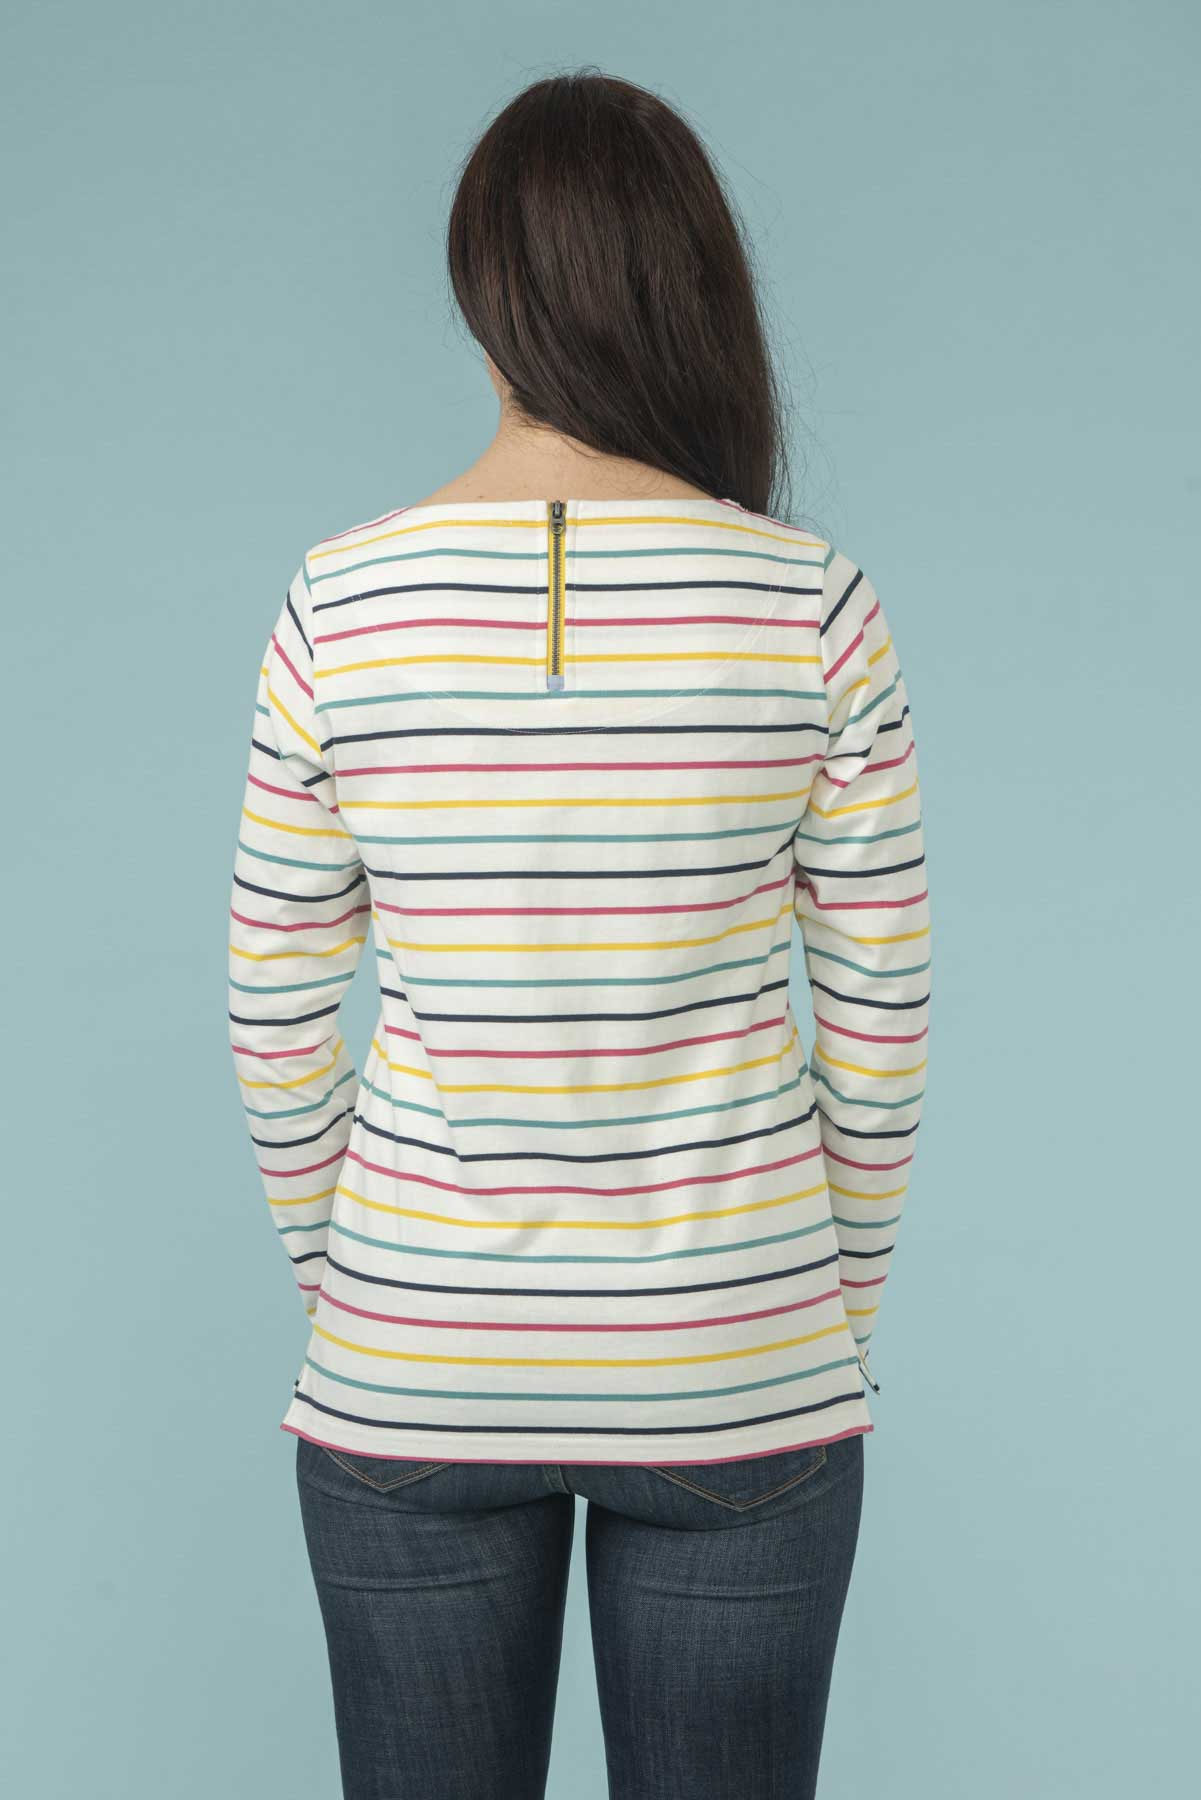 Women's Tops - Causeway - Multi stripe Striped Top